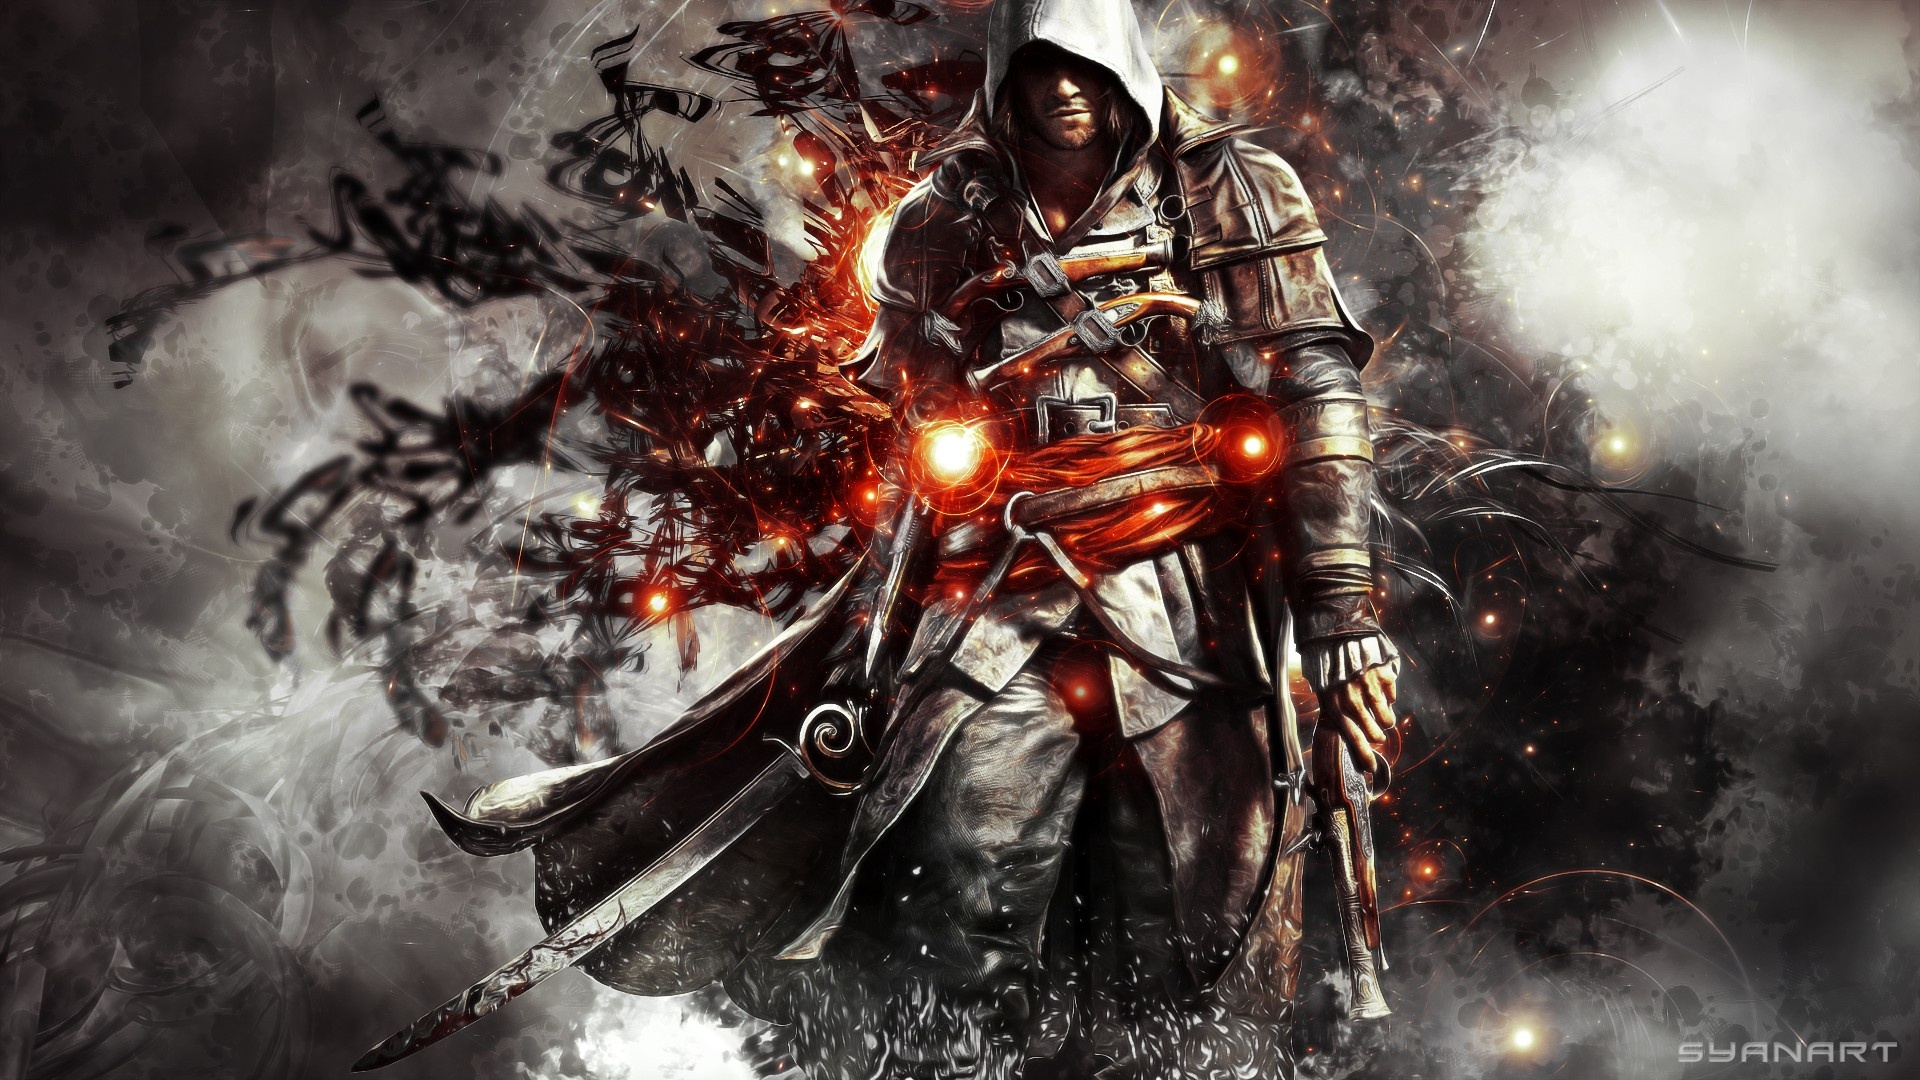 Free Download Assassins Creed Wlpninja 1920x1080 For Your